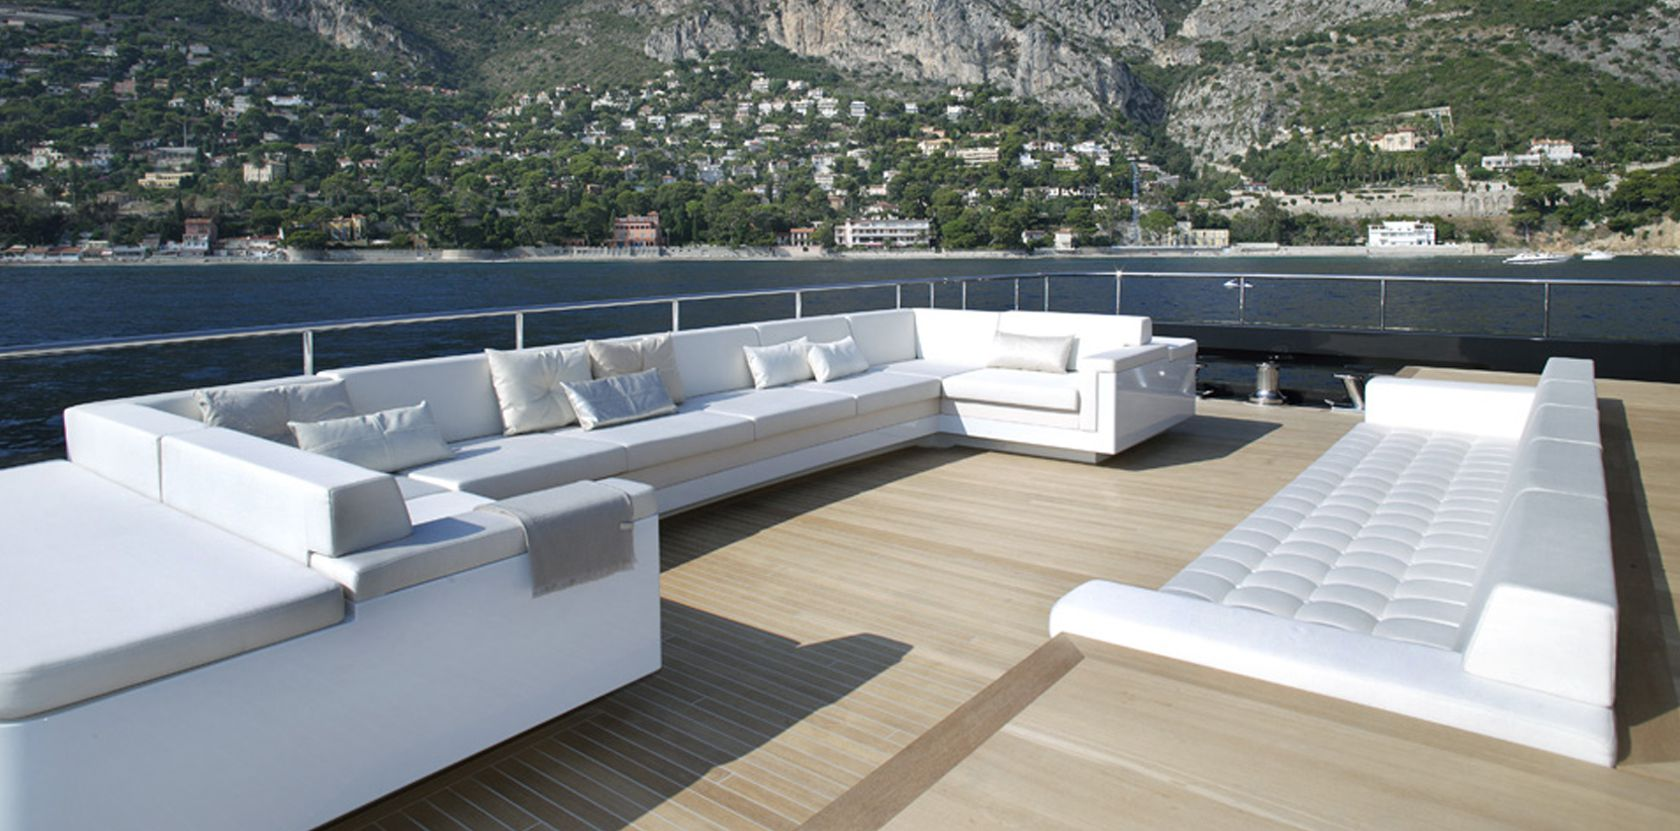 Motor yacht ICON - Outdoor lounging area